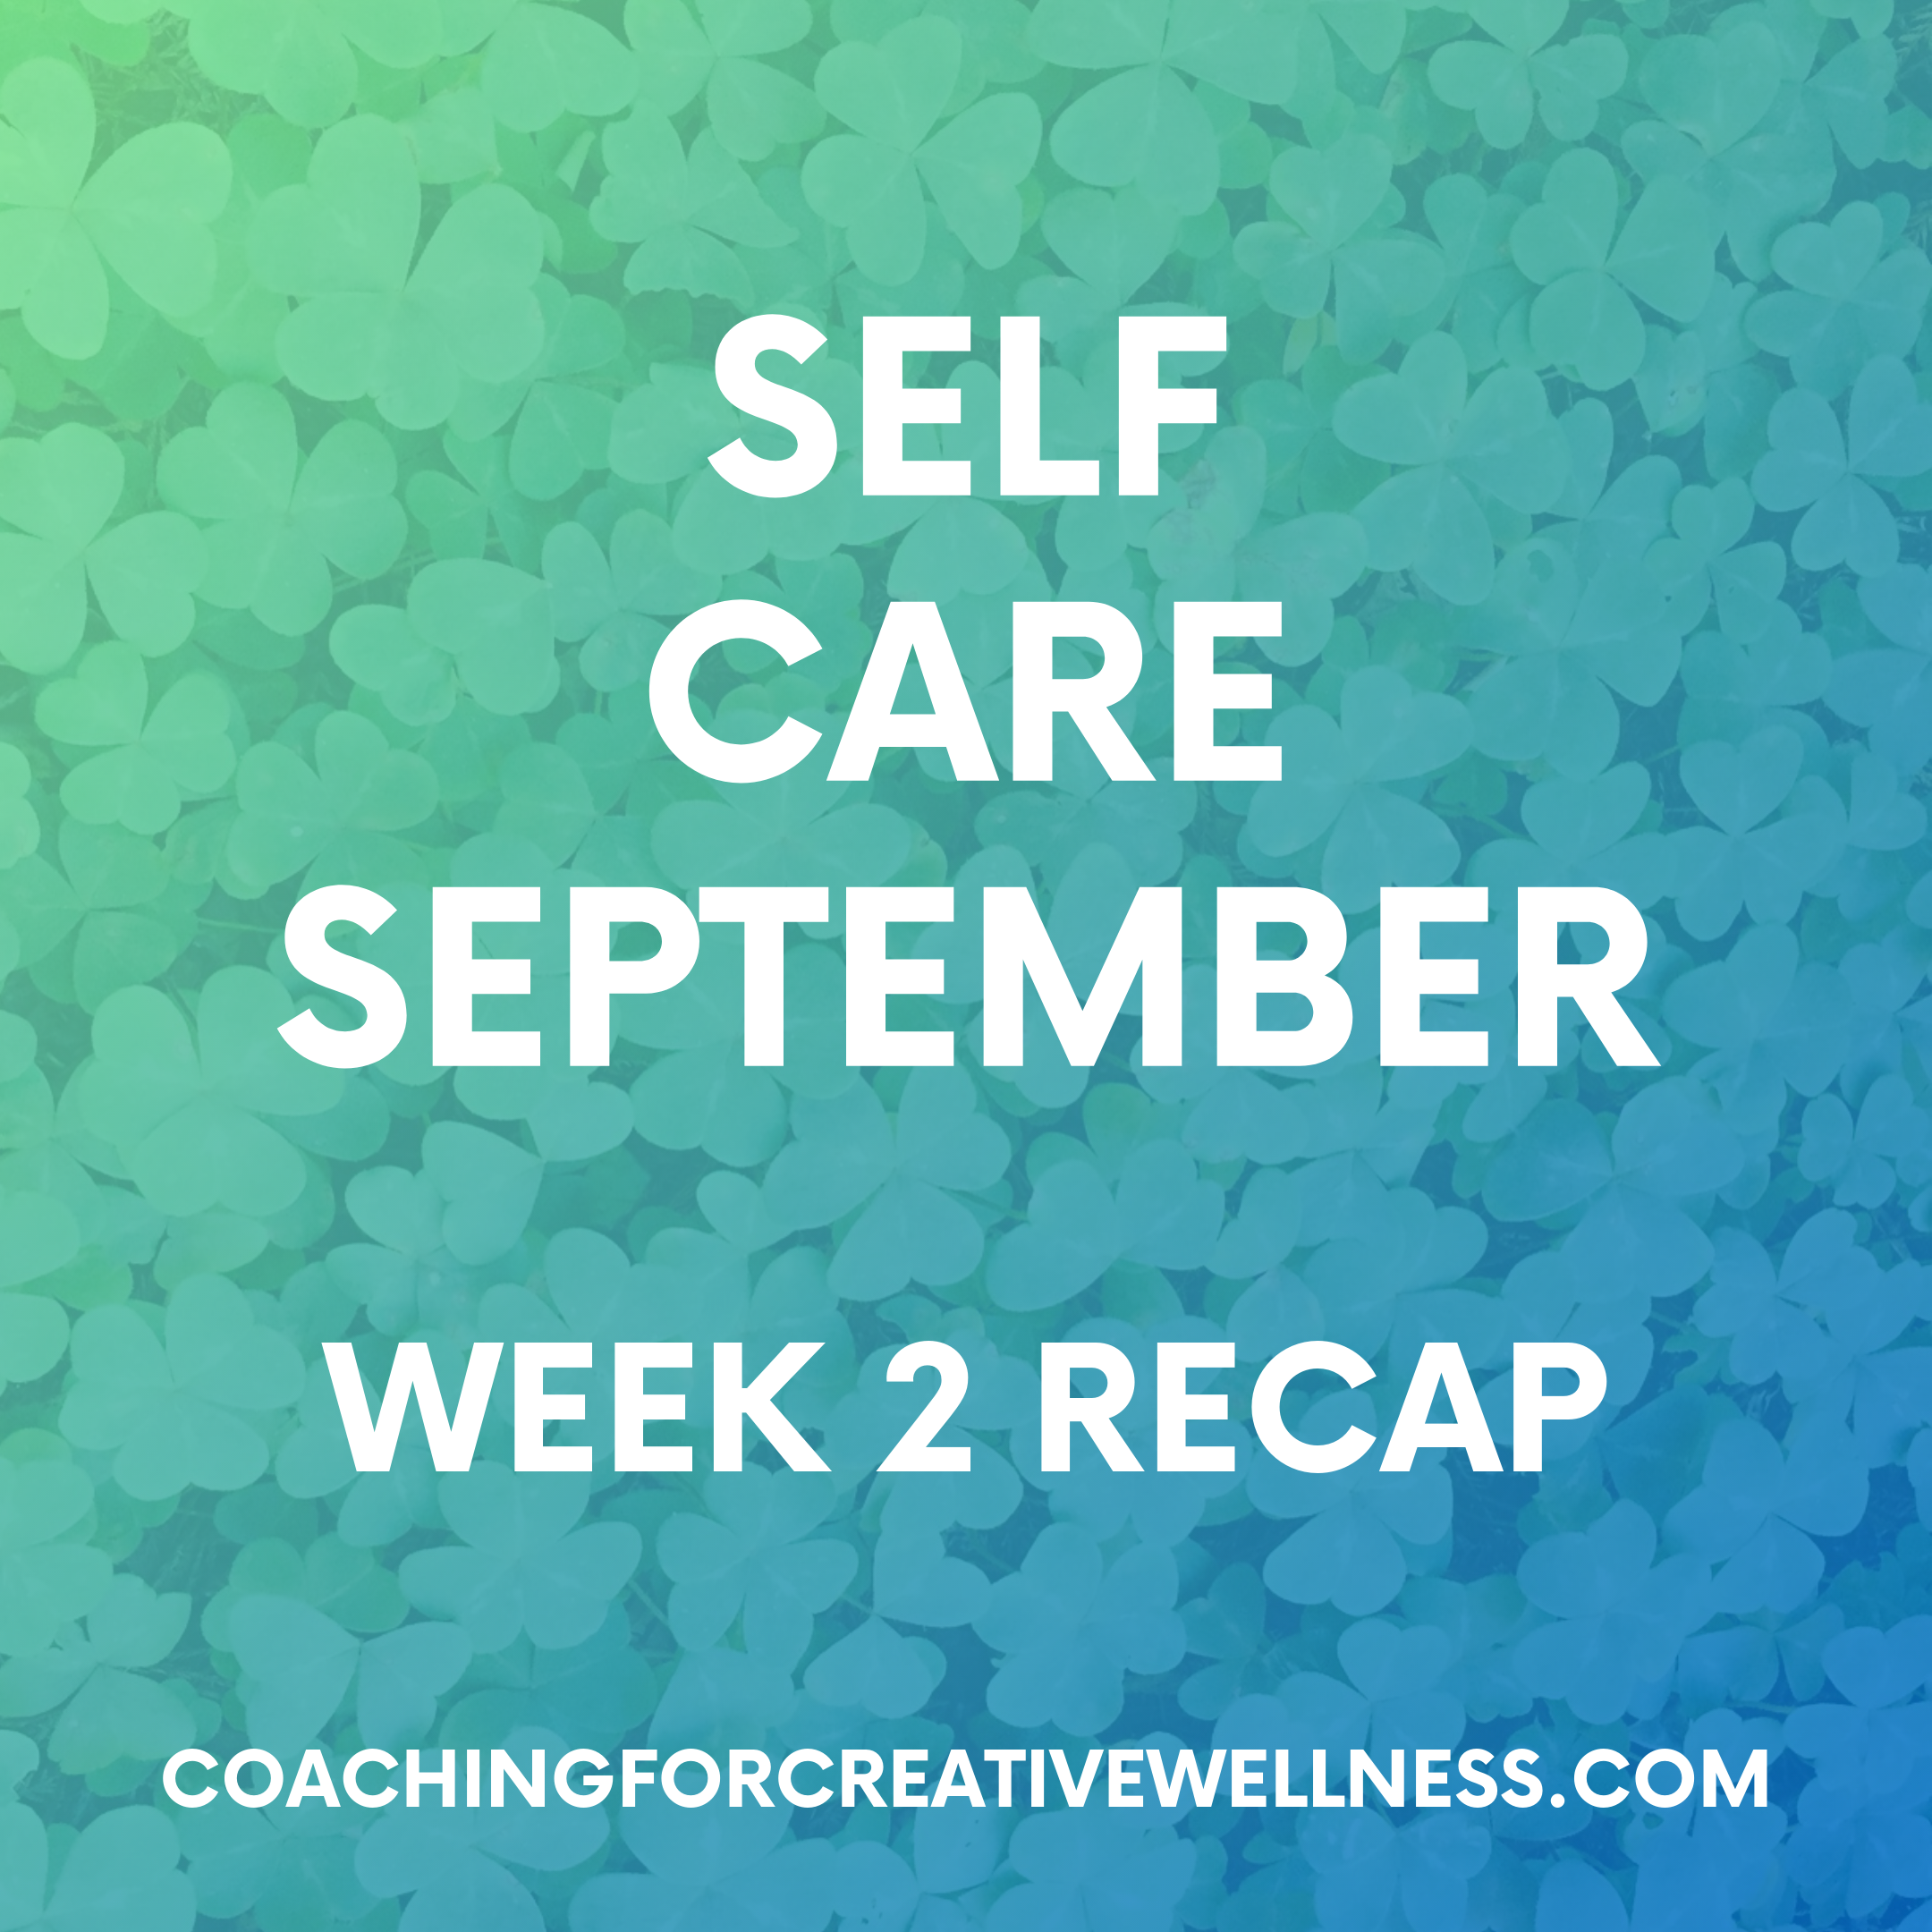 Coaching-for-Creative-Wellness-Self-Care-September-Wk2-recap.png